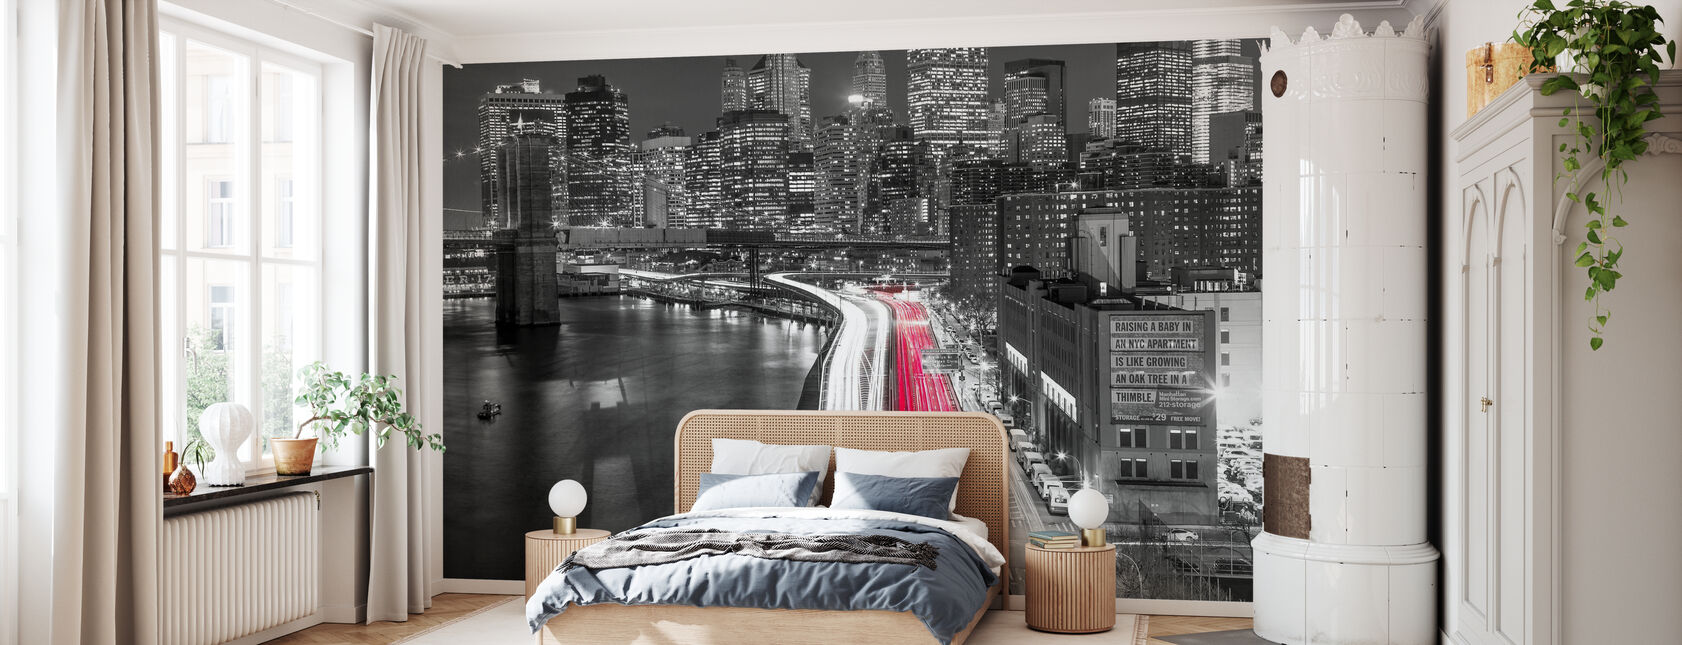 New York City Movement - Bw - Wallpaper - Bedroom